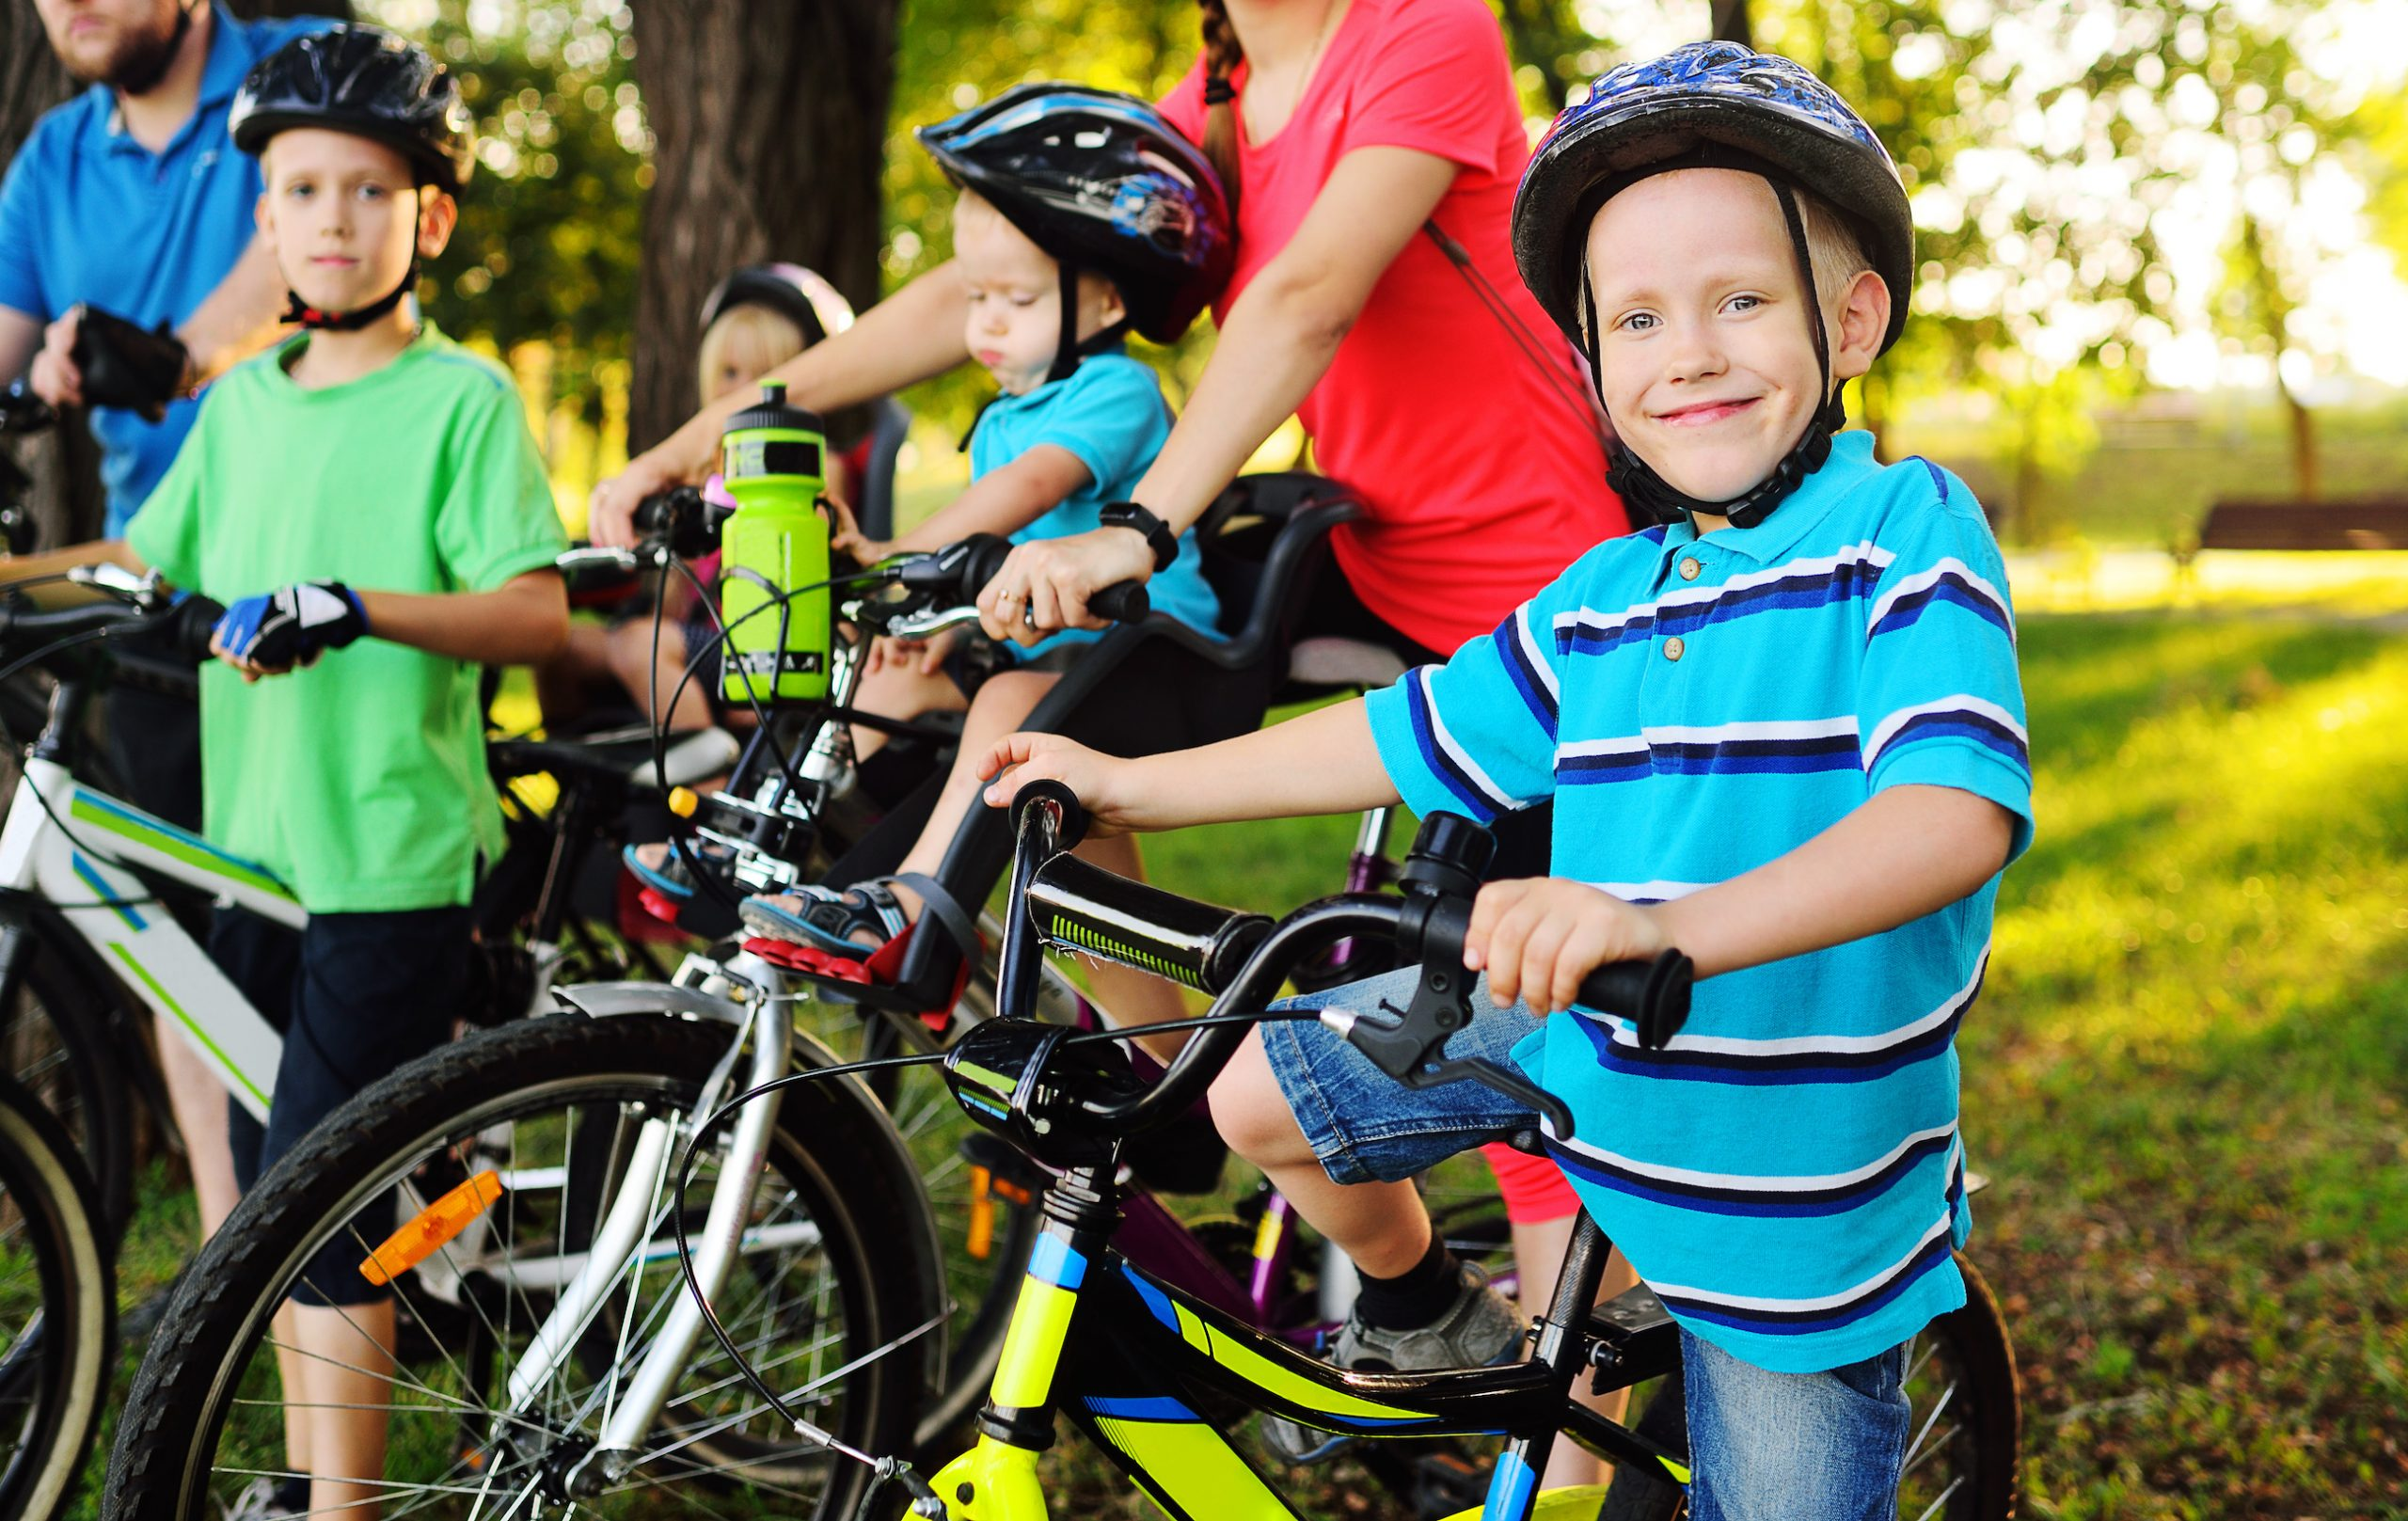 Investment, joined-up thinking and friends are keys to building on cycling boom